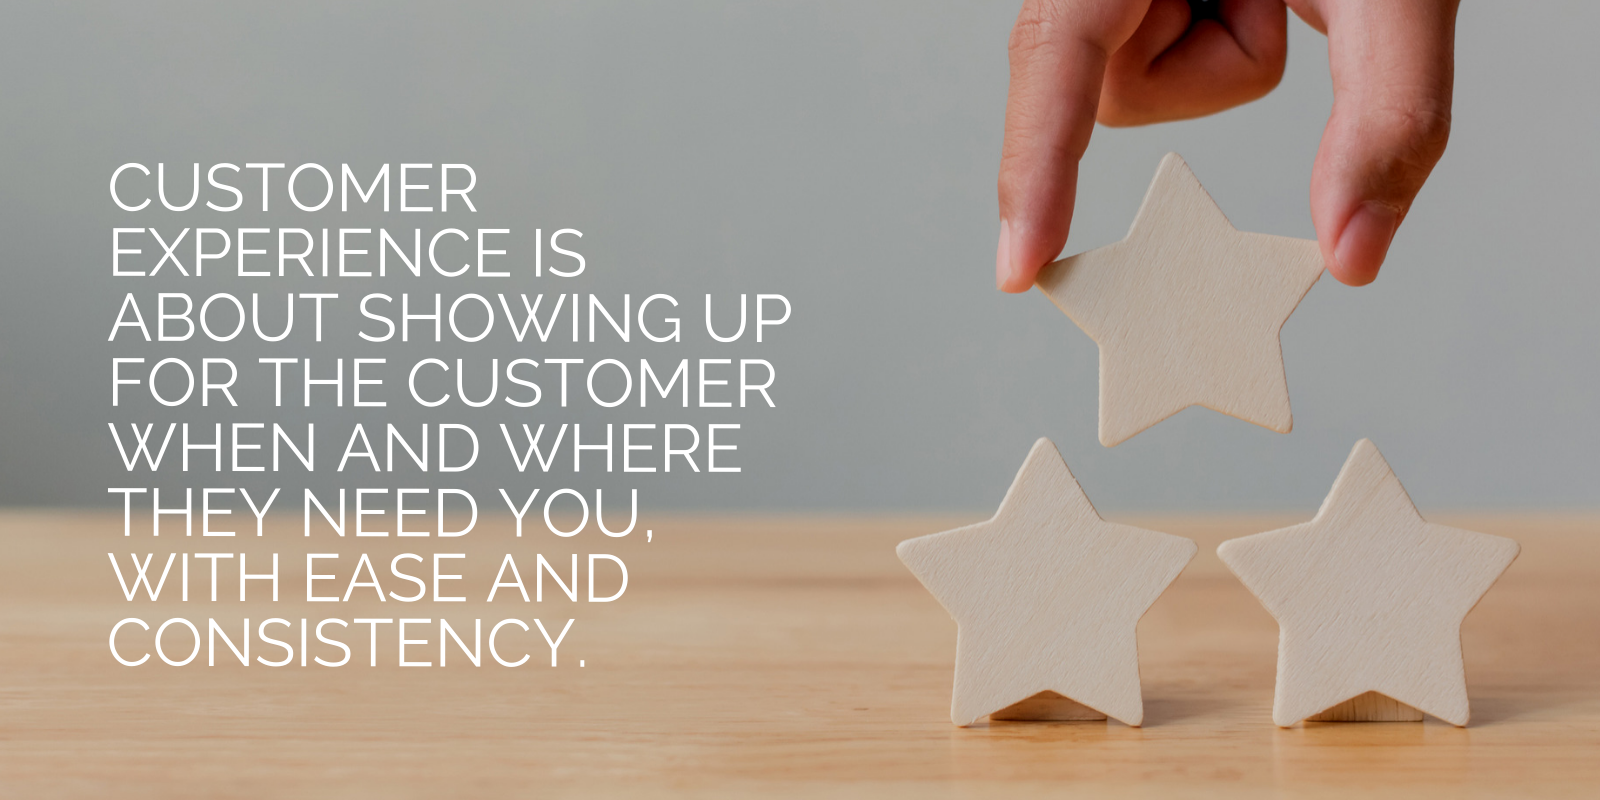 Customer experience showing up